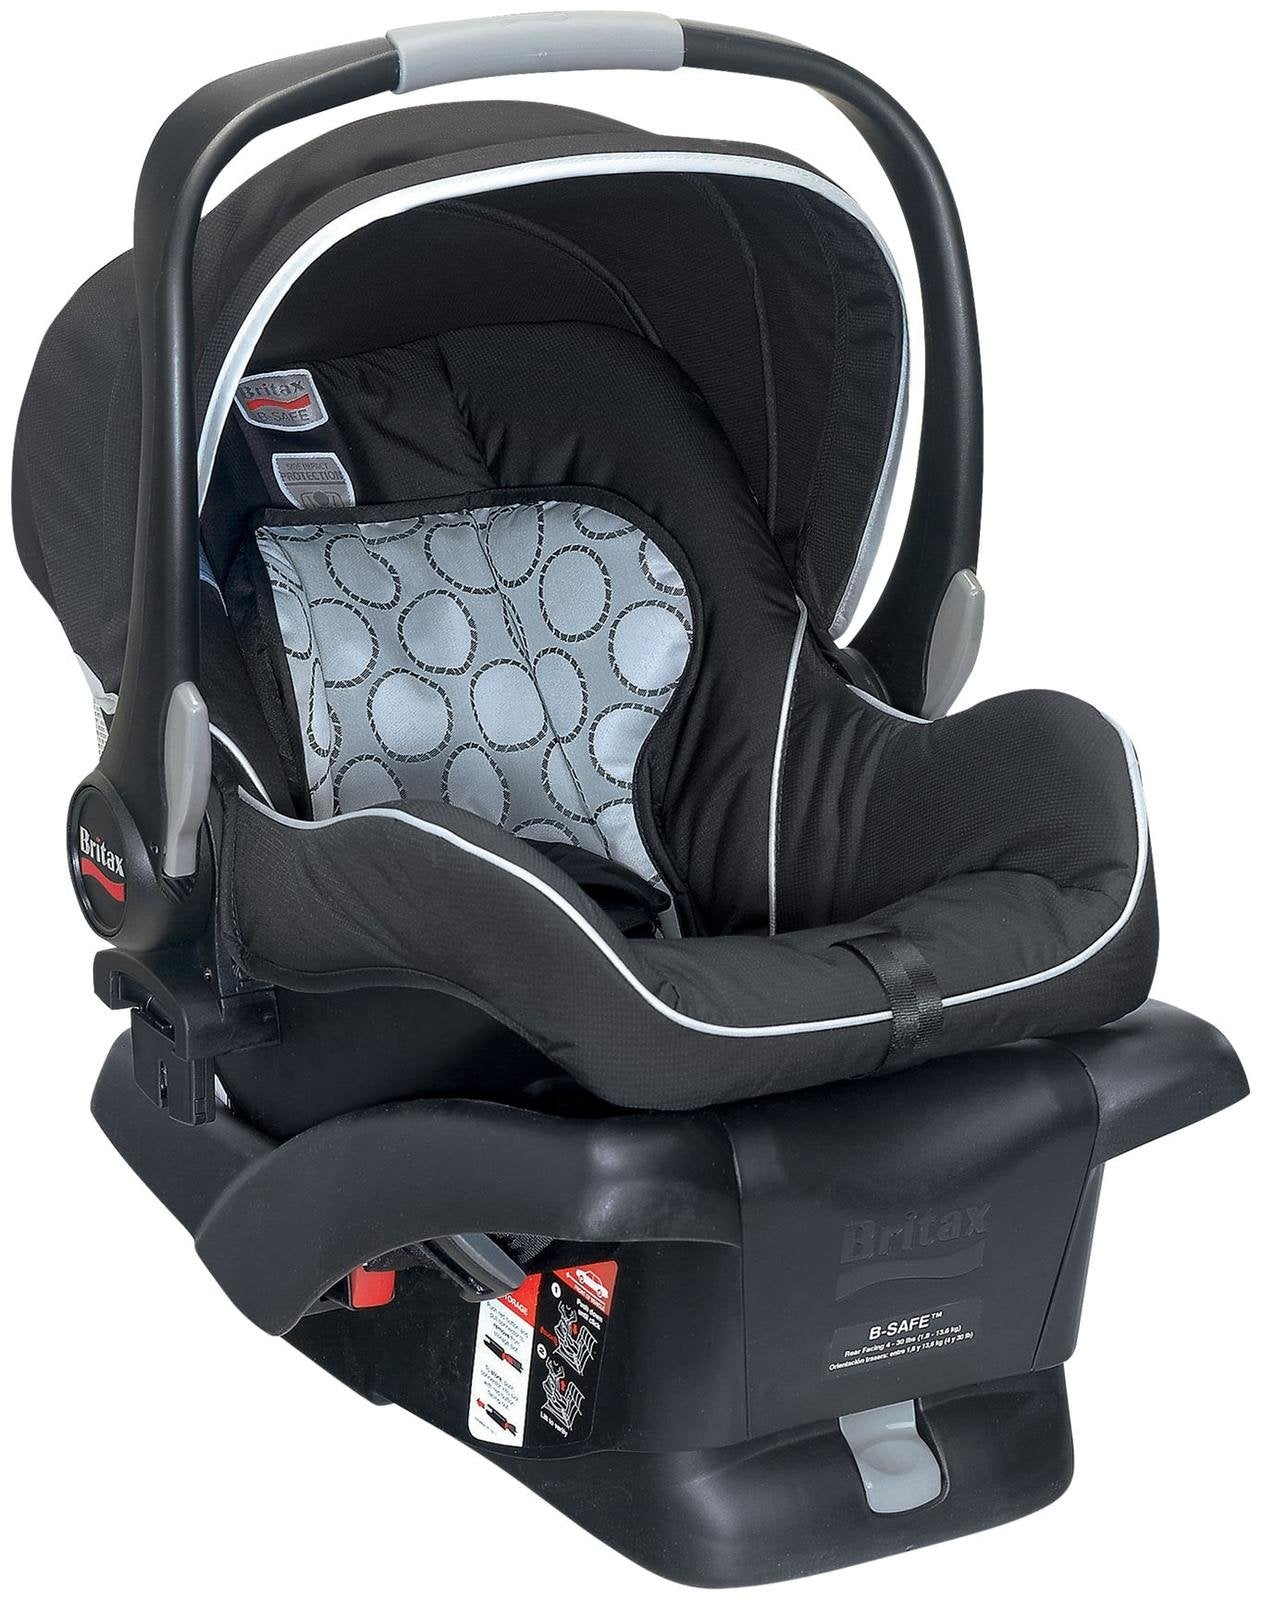 Car Seat, Baby Car Seat Add Ons For Your Small One